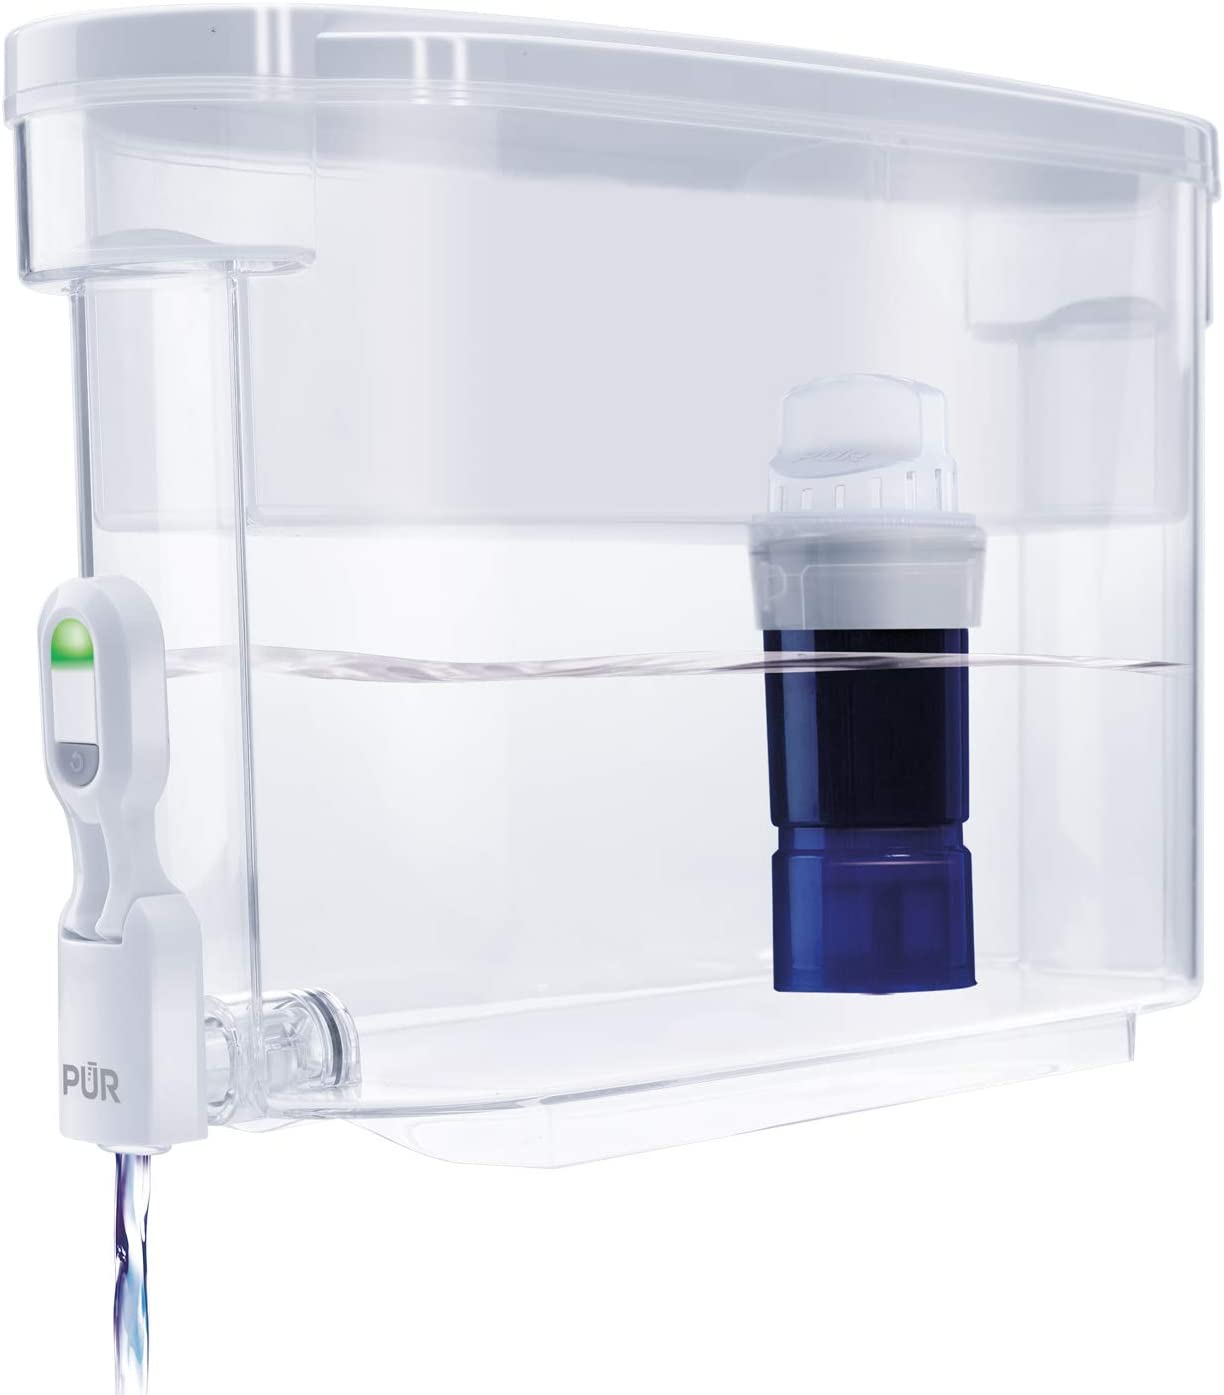 PUR DS1811Z Water Filter Dispenser